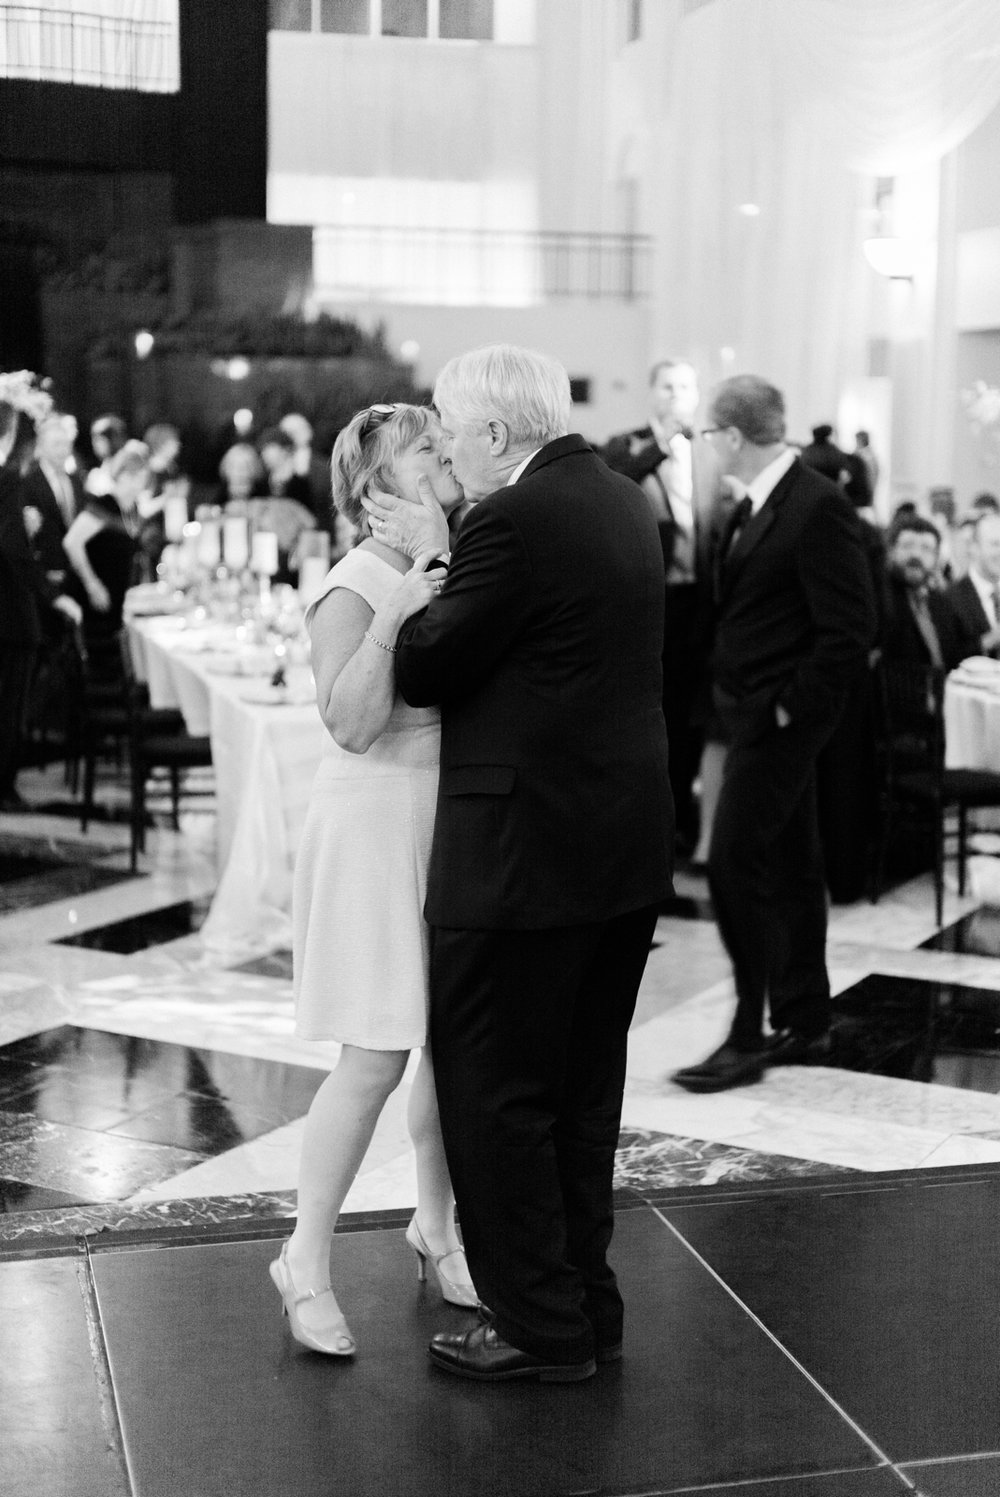 atrium at curtis center wedding photographer philadelphia wedding photographer shannon griffin_0052.jpg